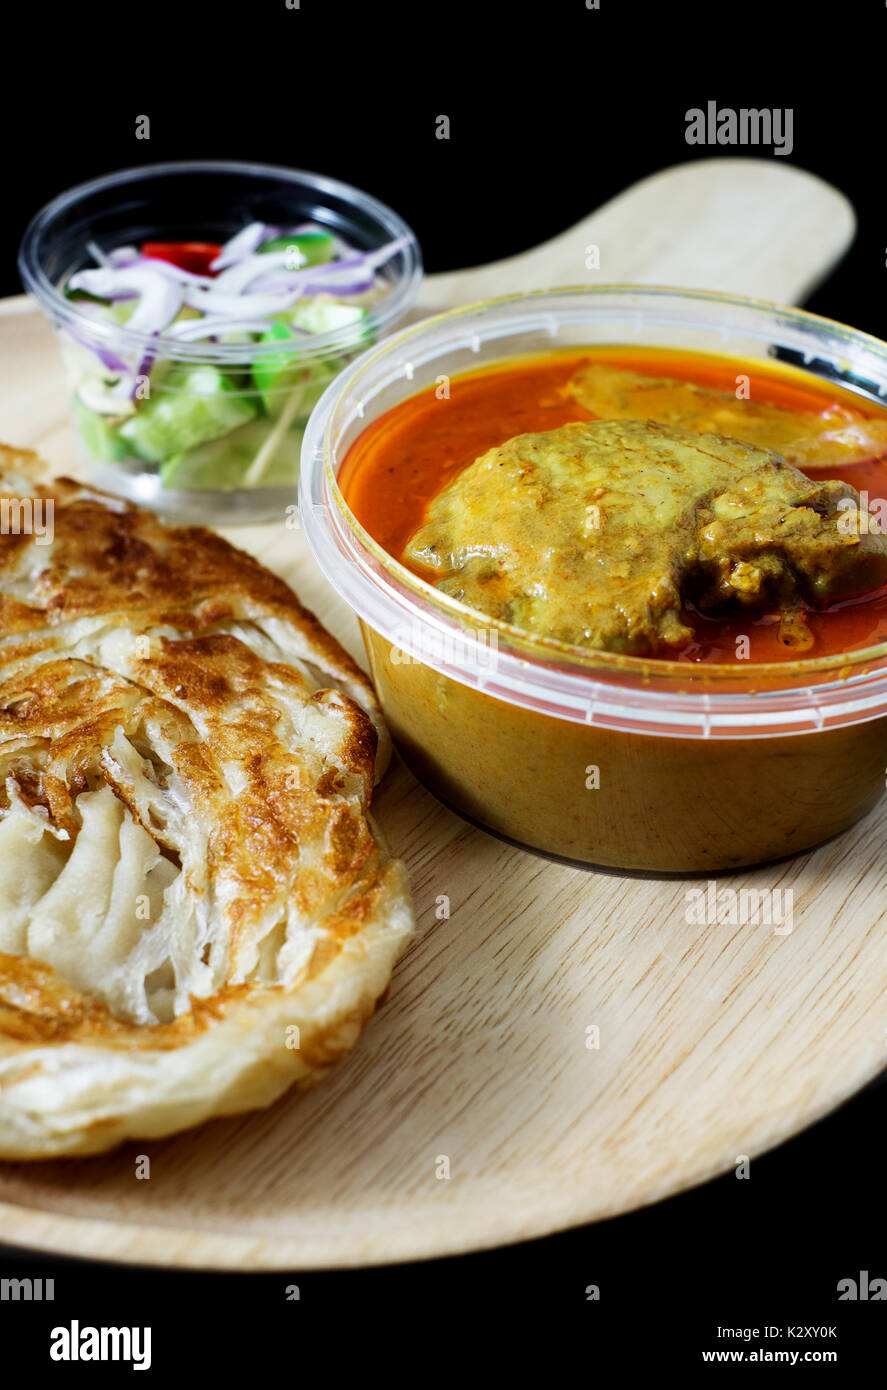 red curry chicken serve with roti and sour sauce on black background - Stock Image